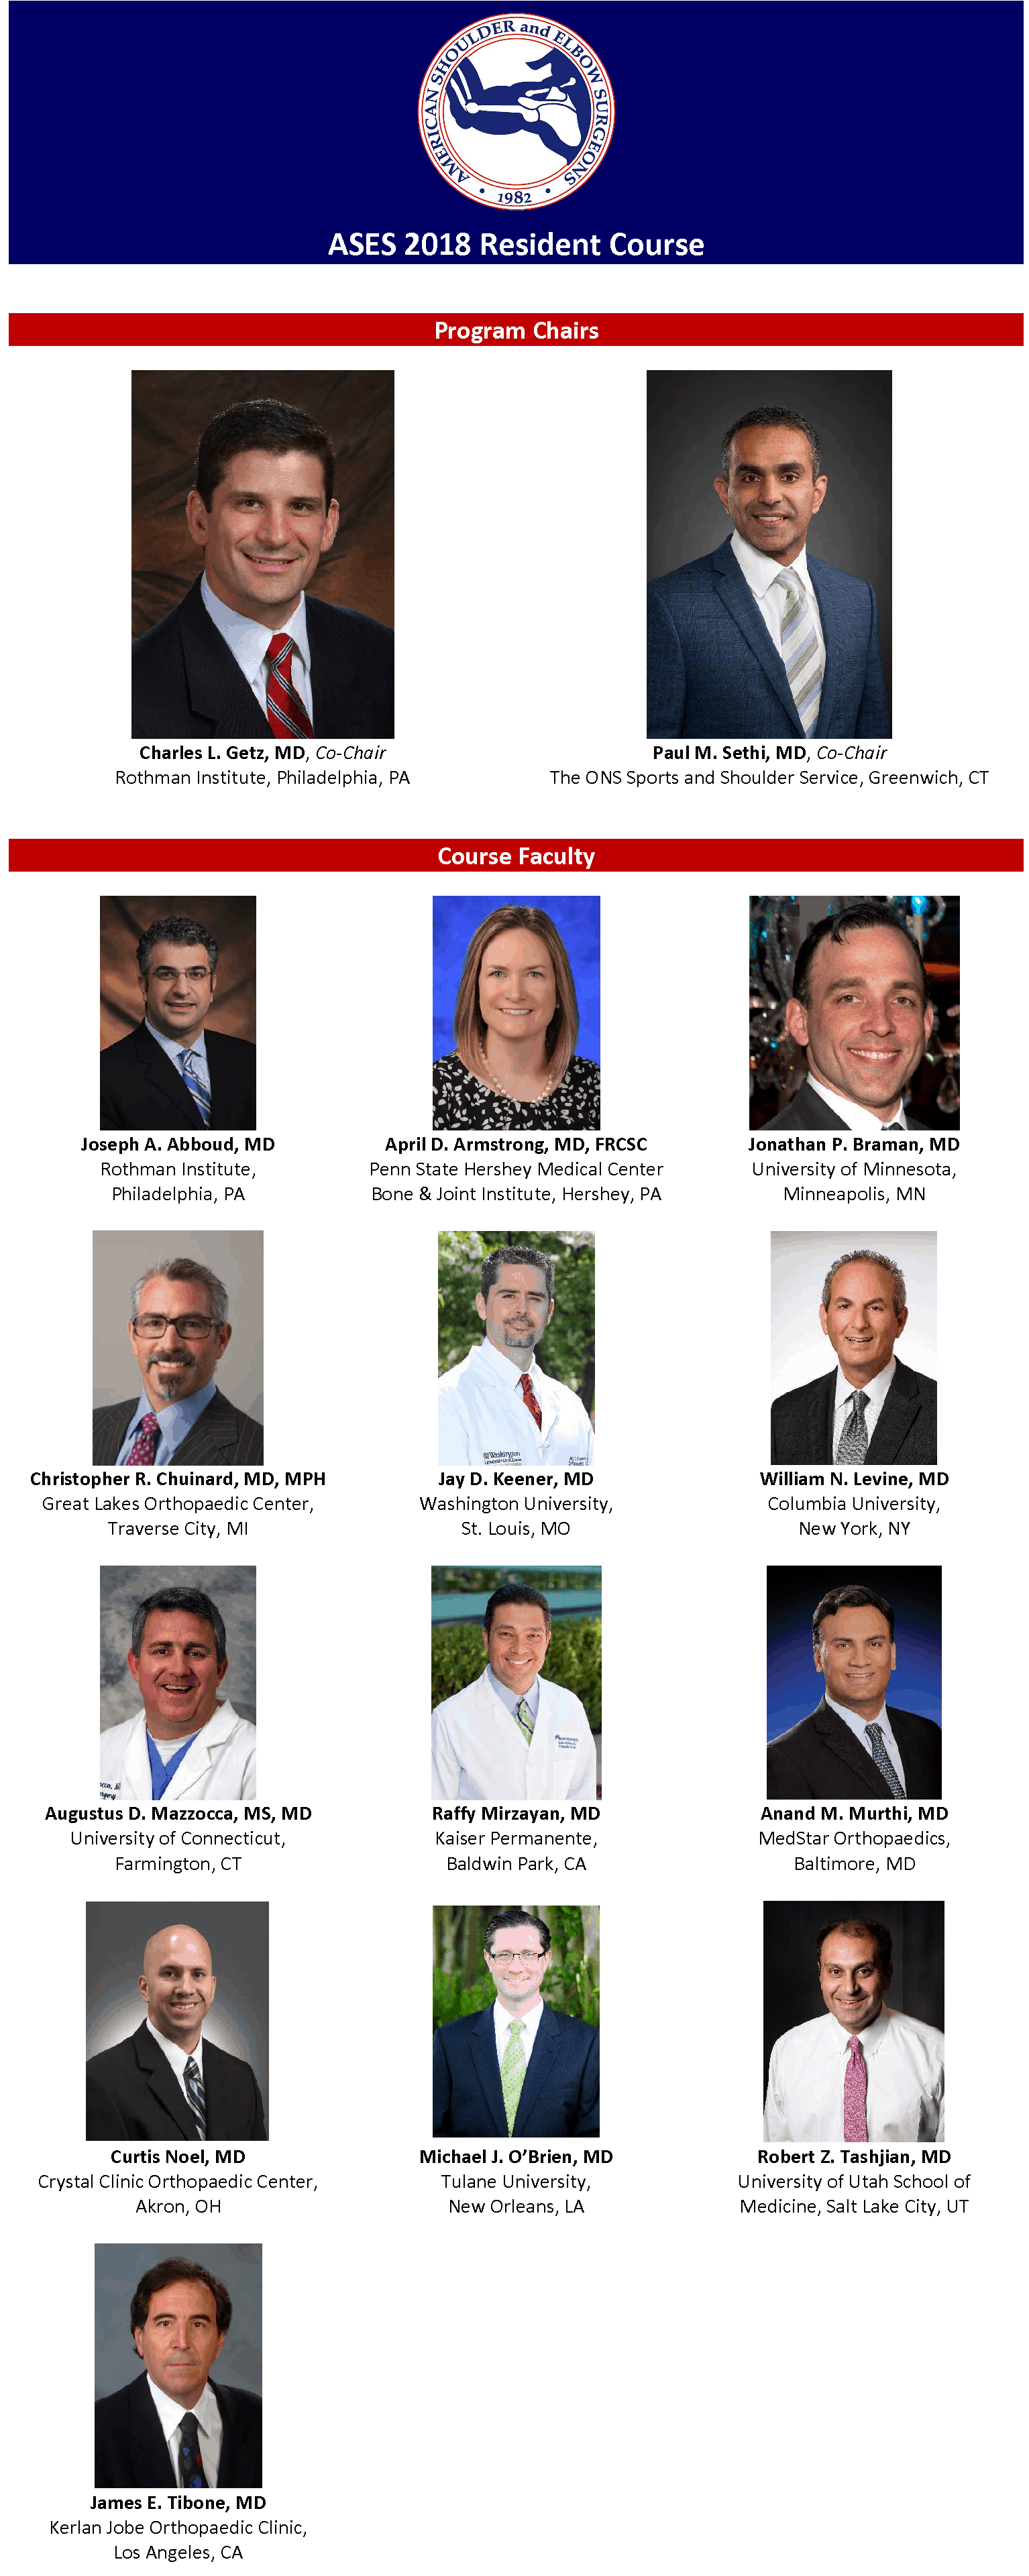 ASES 2018 Resident Course